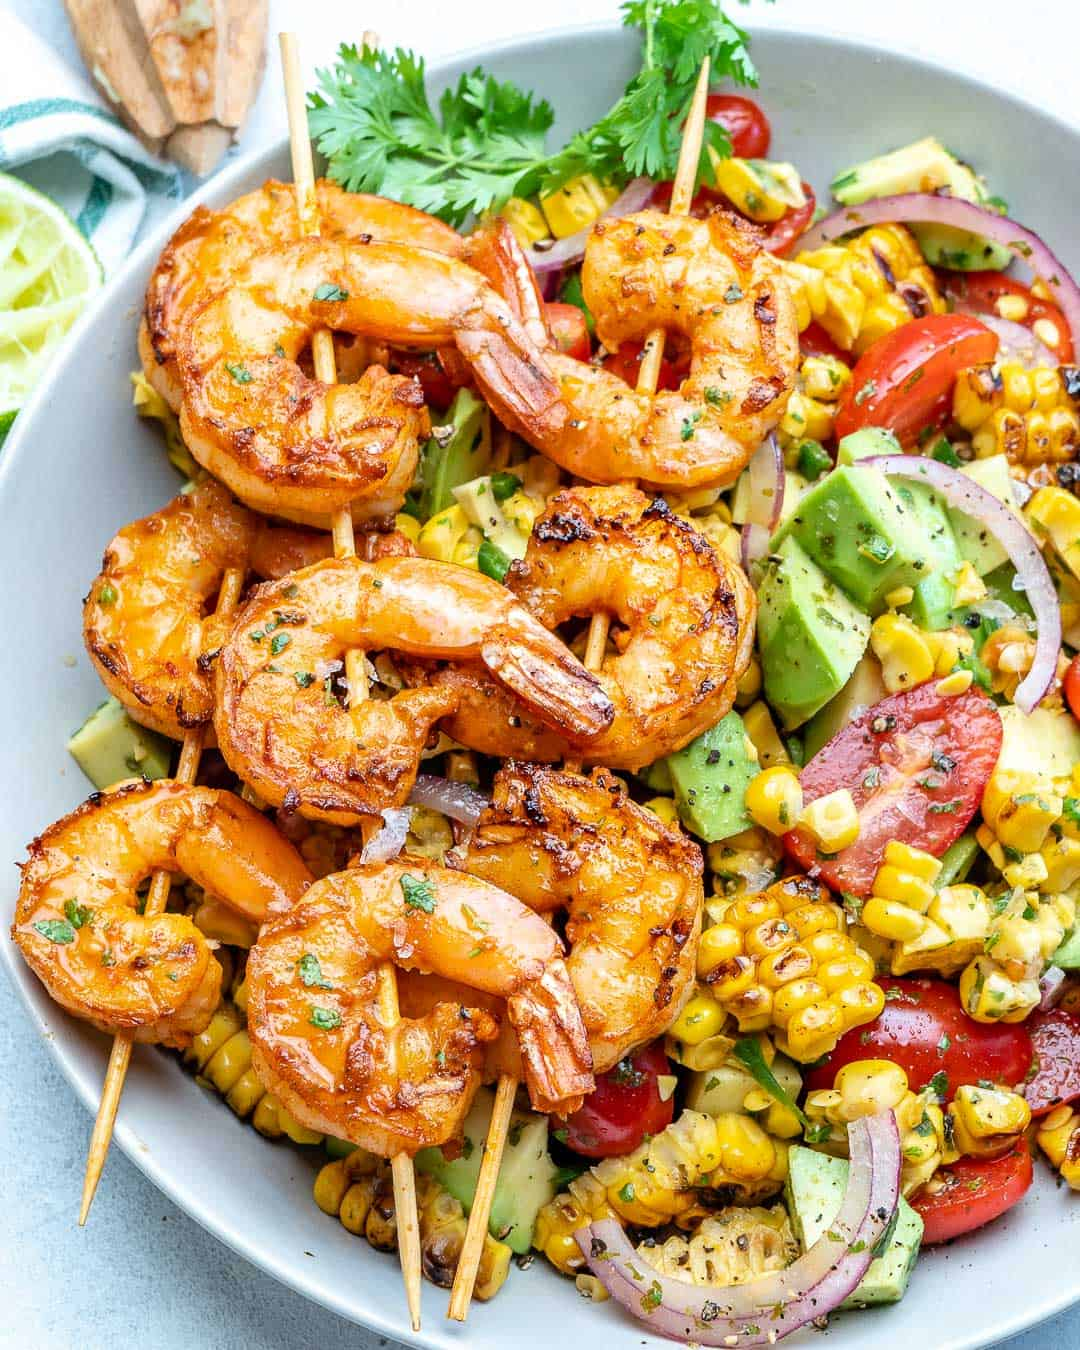 top view of corn salad with grilled shrimp skewers